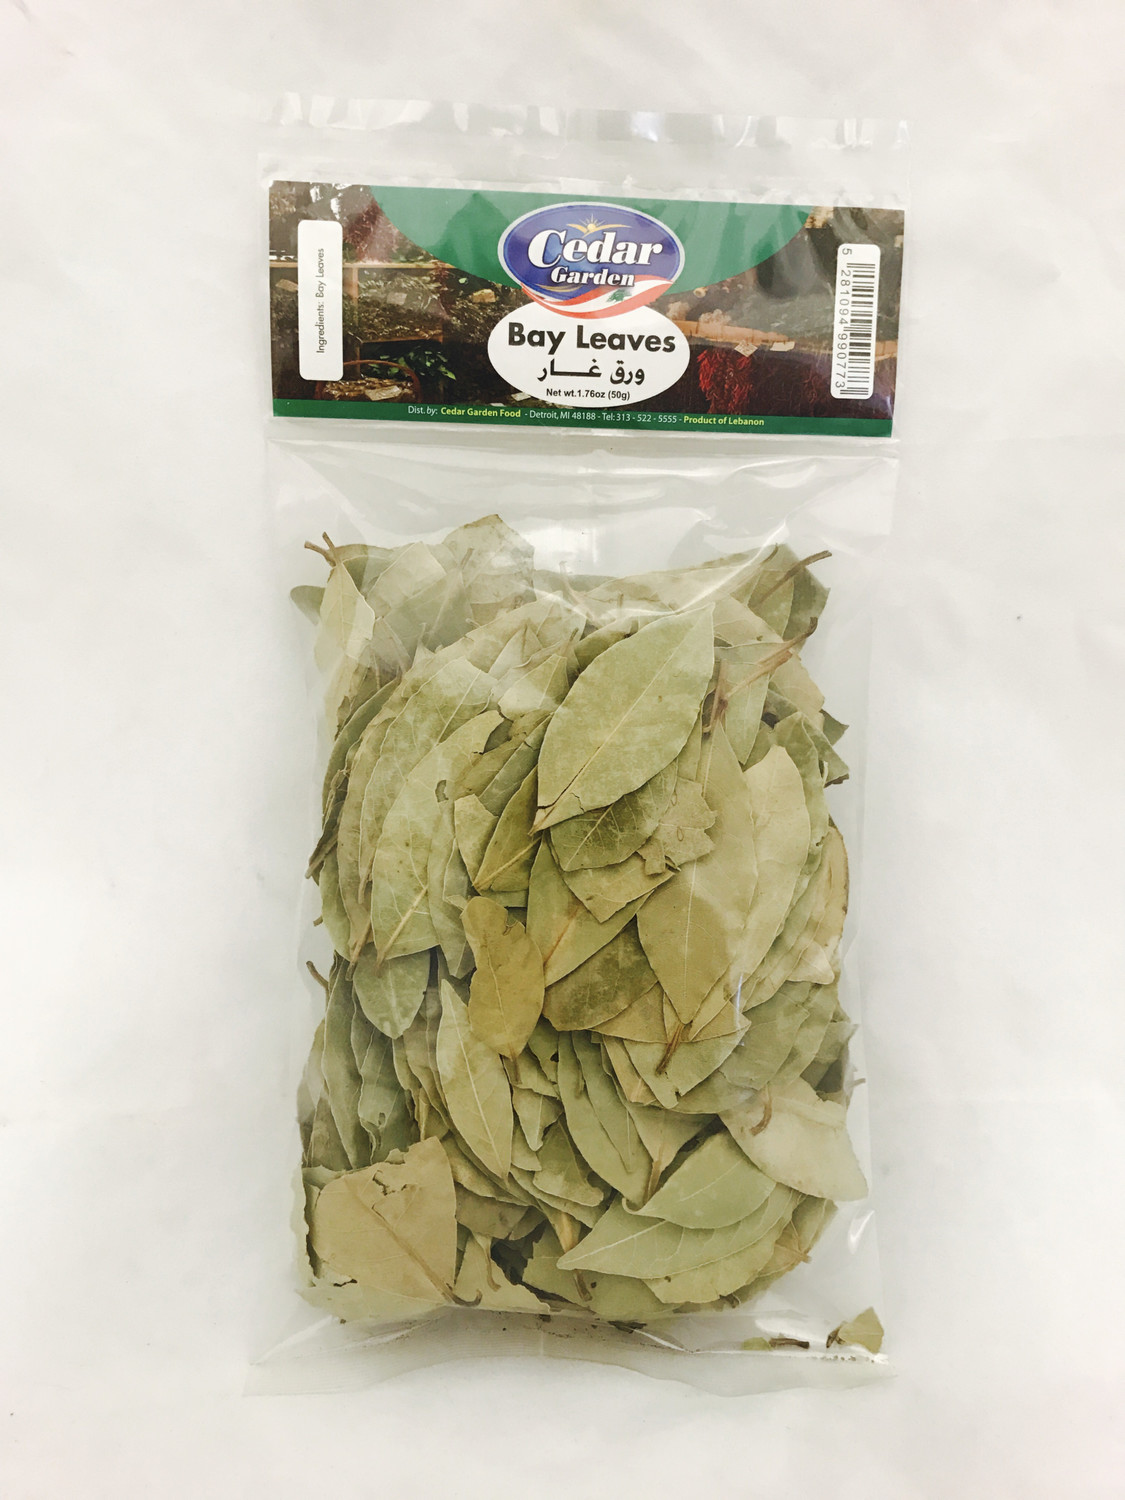 Cedar garden bay leaves hanger bag 24x100g